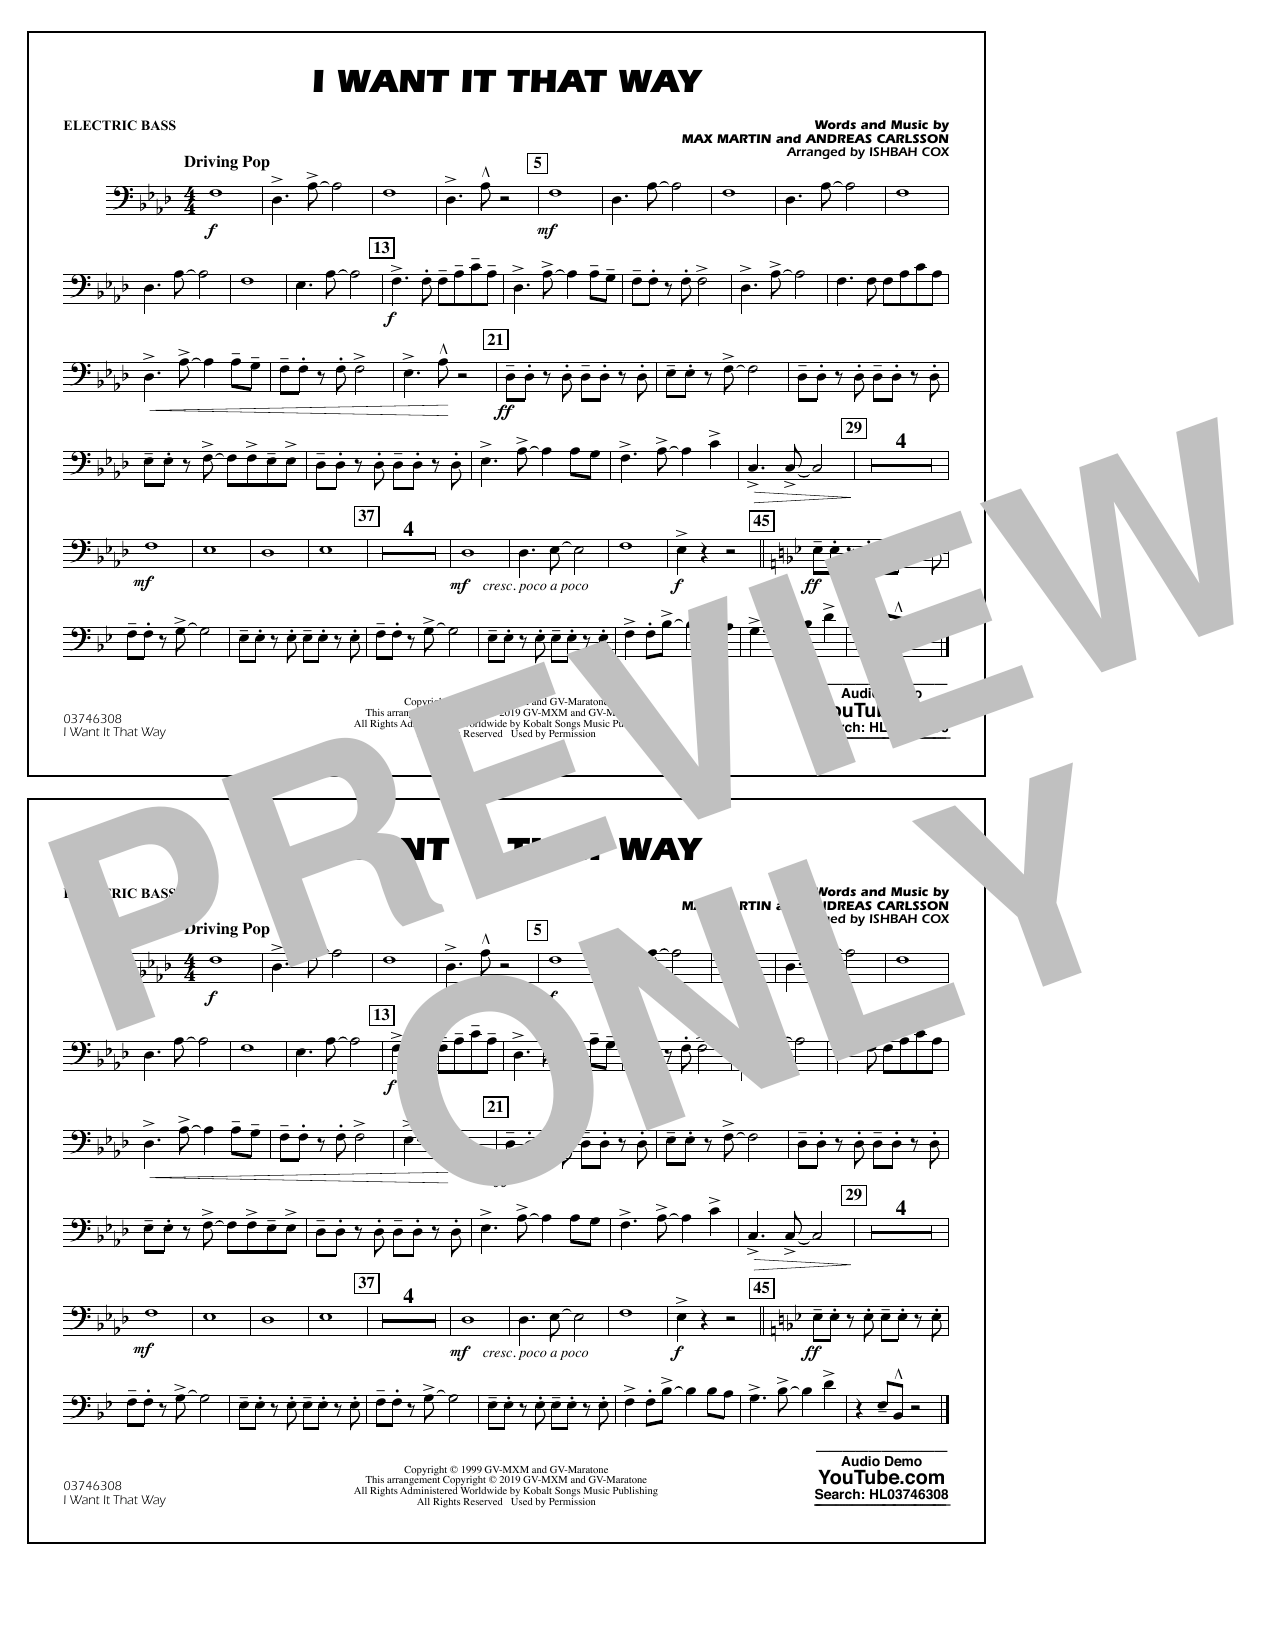 Backstreet Boys I Want It That Way (arr. Ishbah Cox) - Electric Bass sheet music notes and chords